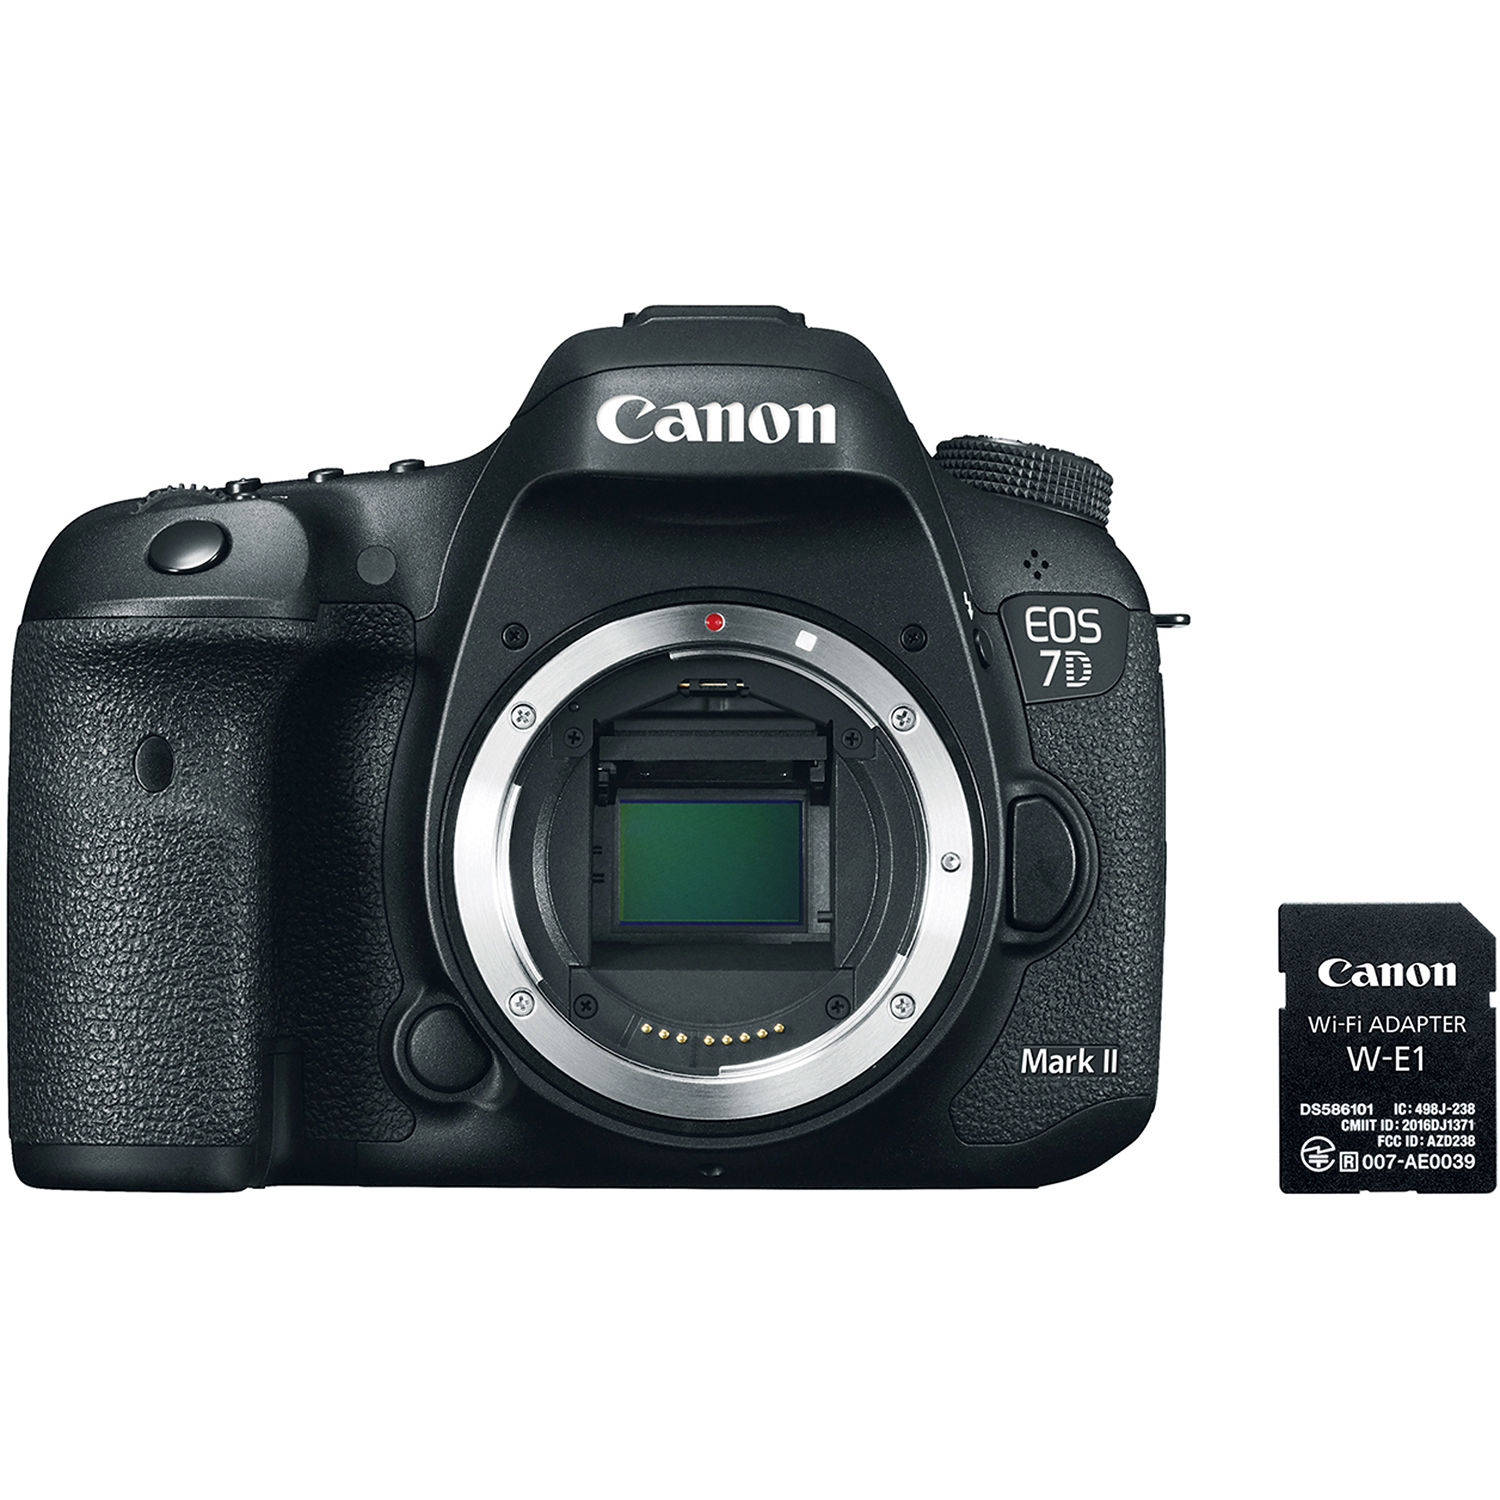 Canon EOS 7D Mark II DSLR Camera Body With W E1 Wi Fi 9128B126